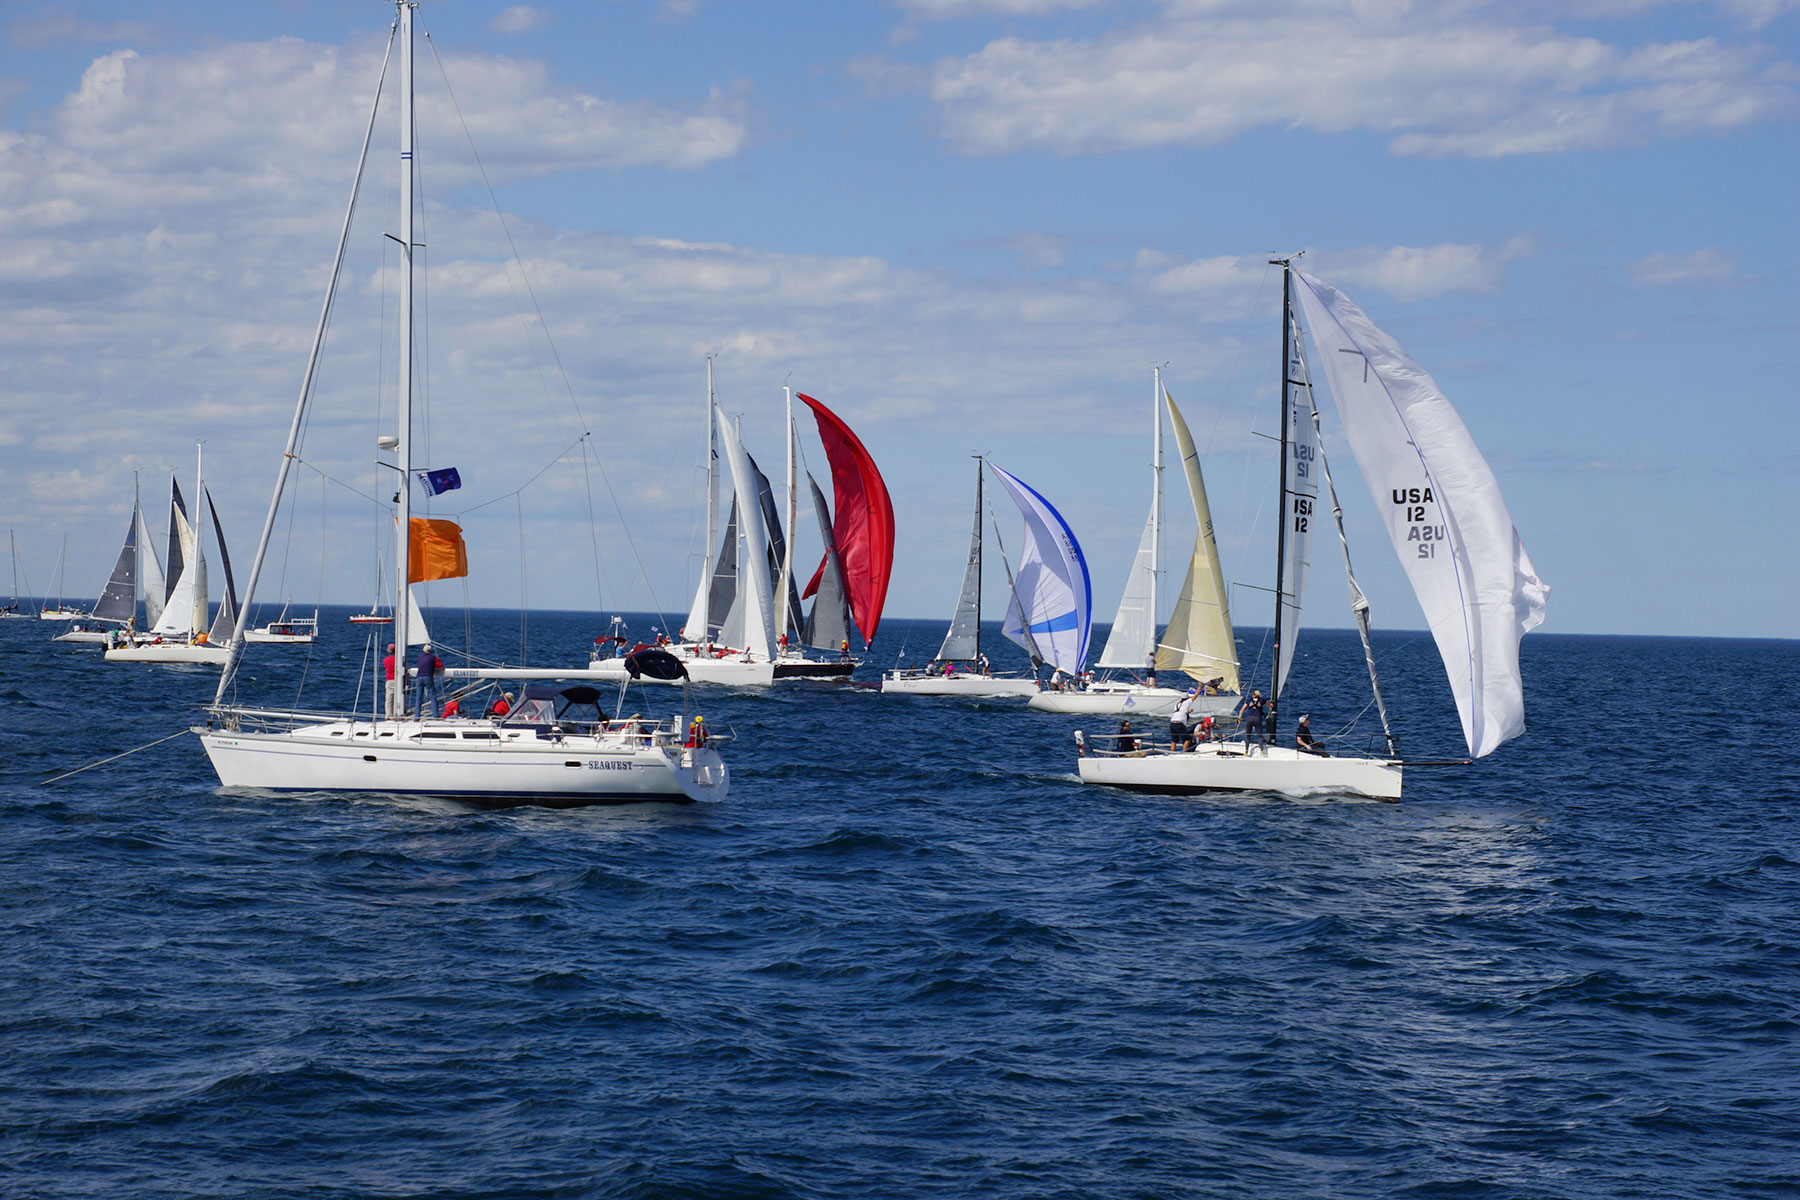 Sailboats Race In Queens Cup To Win One Of Oldest